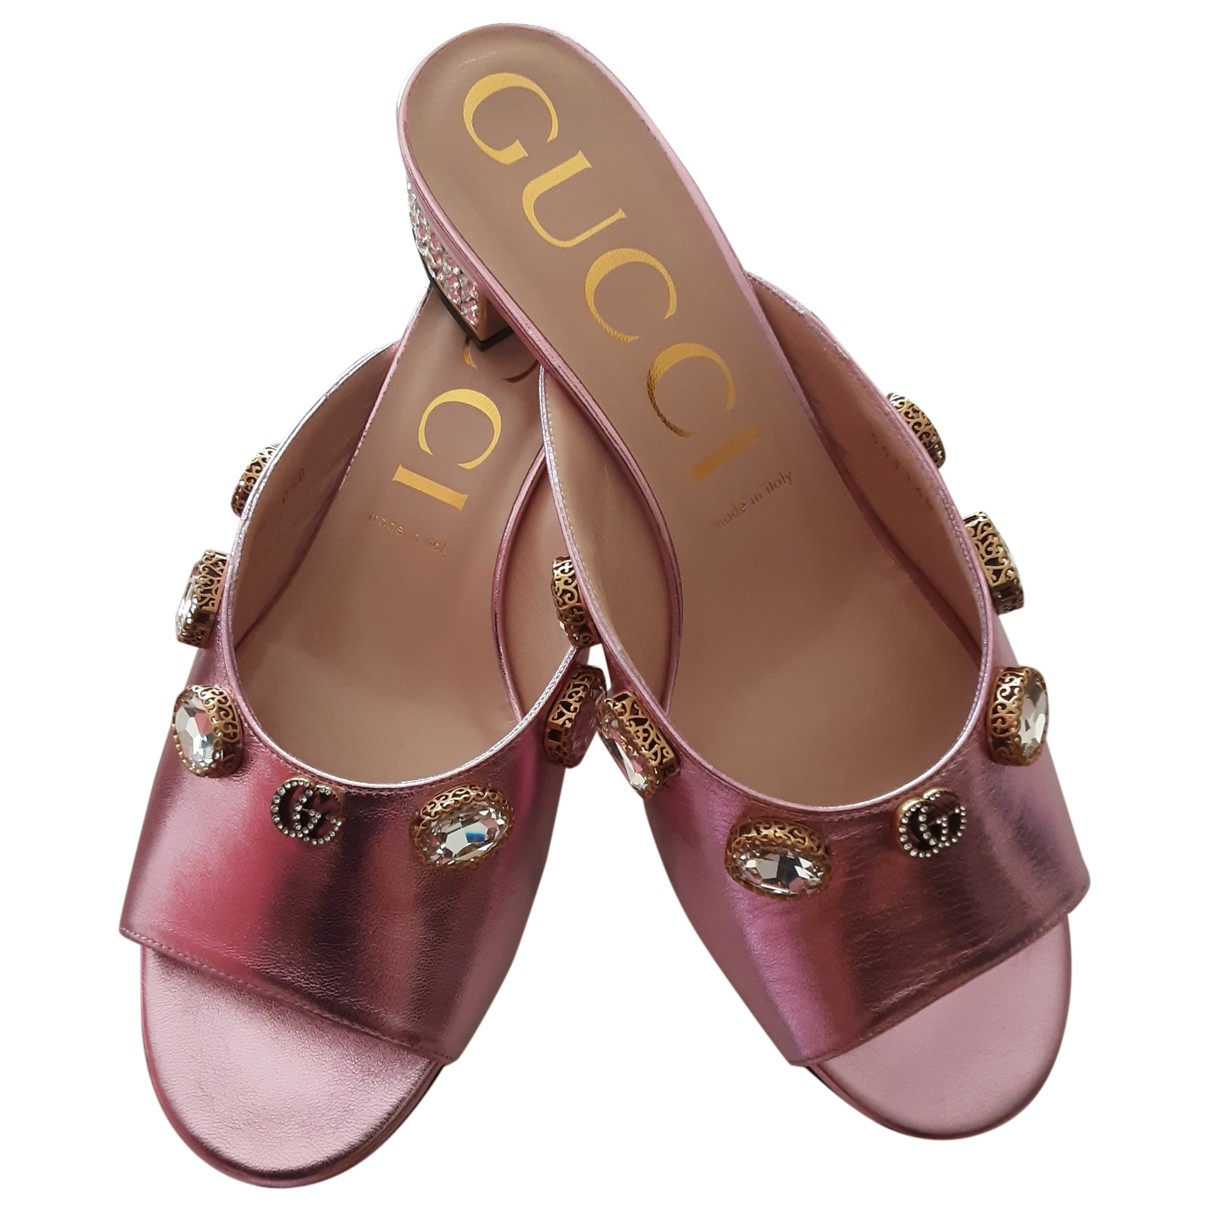 Gucci \N Pink Leather Sandals for Women 40 EU